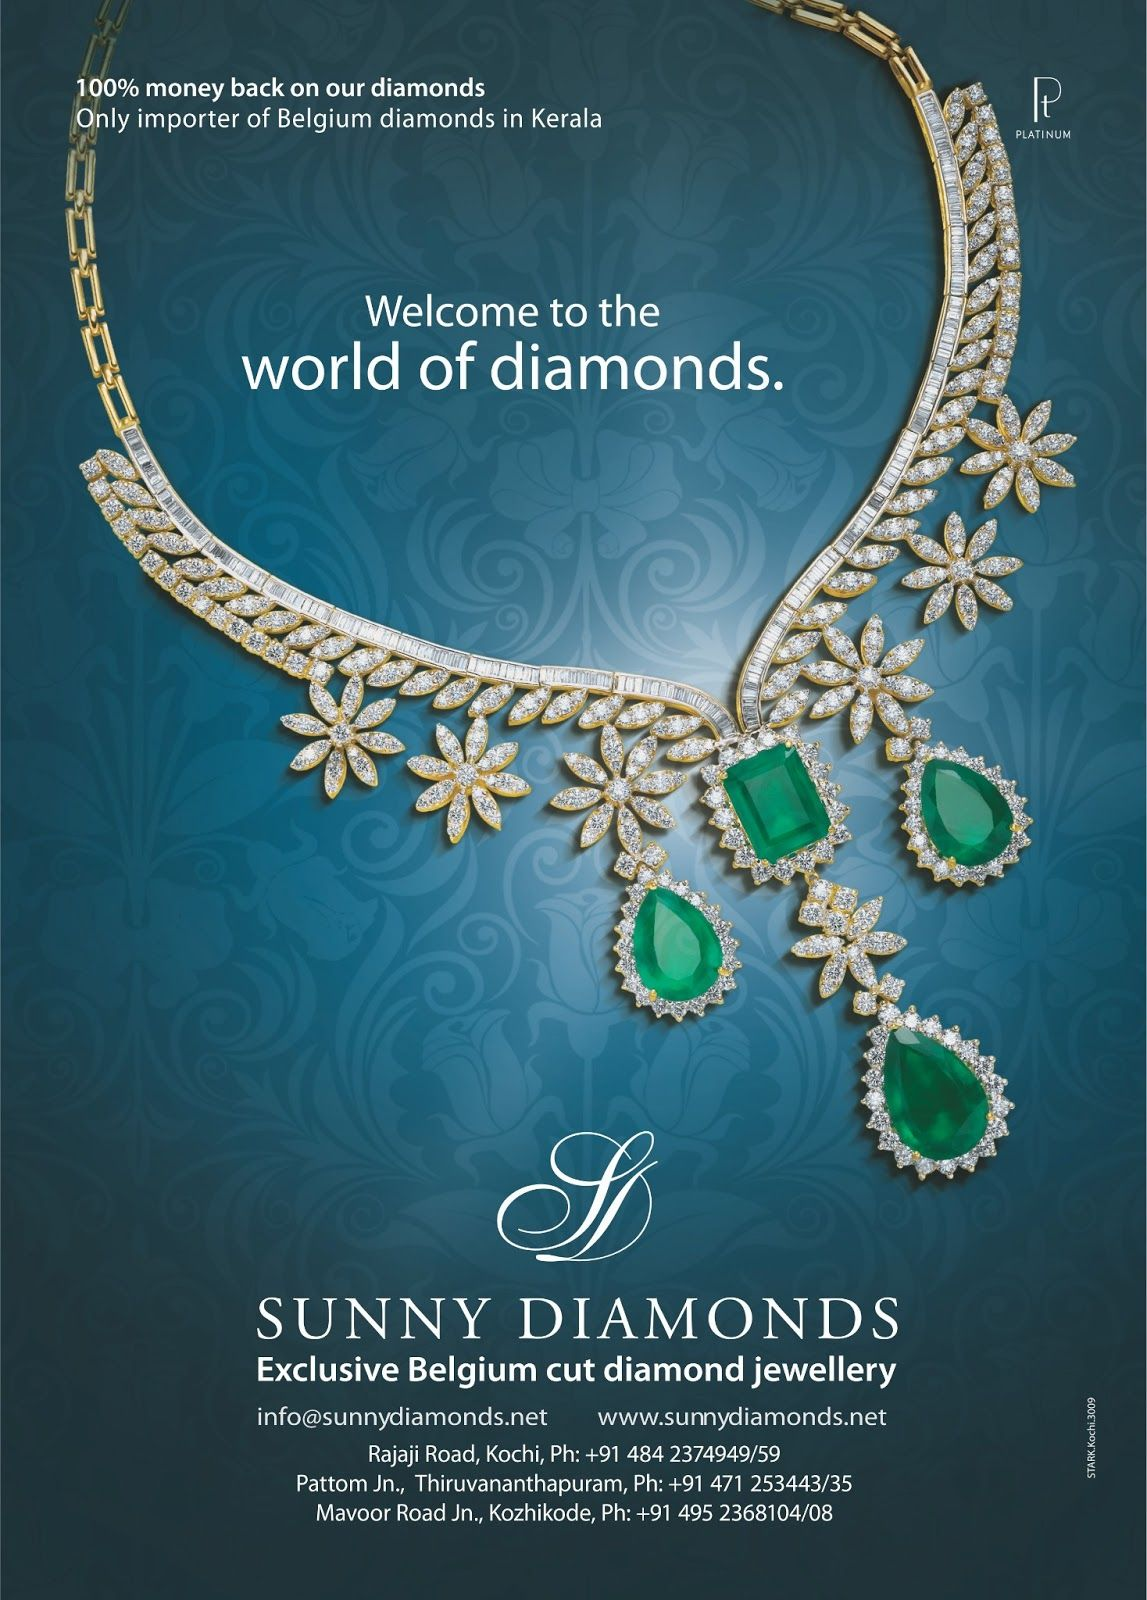 Pin by Roger on diamond advertising in 2019 | Jewelry ads